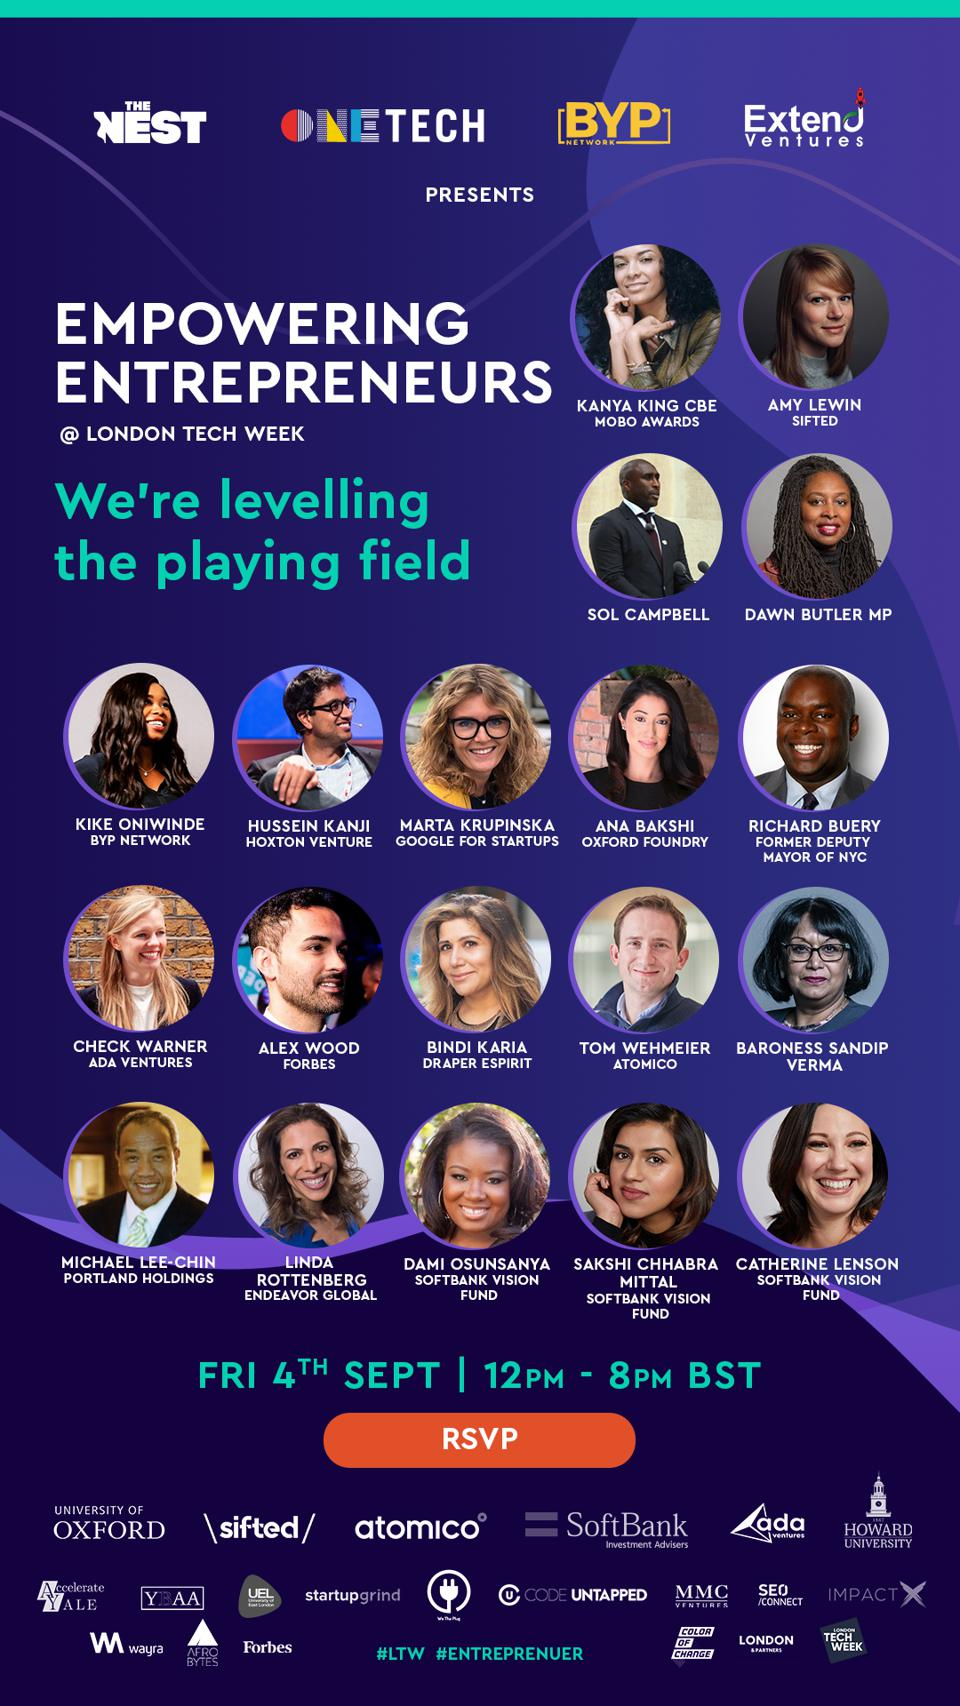 A flier for an event to empower entrepreneurs.